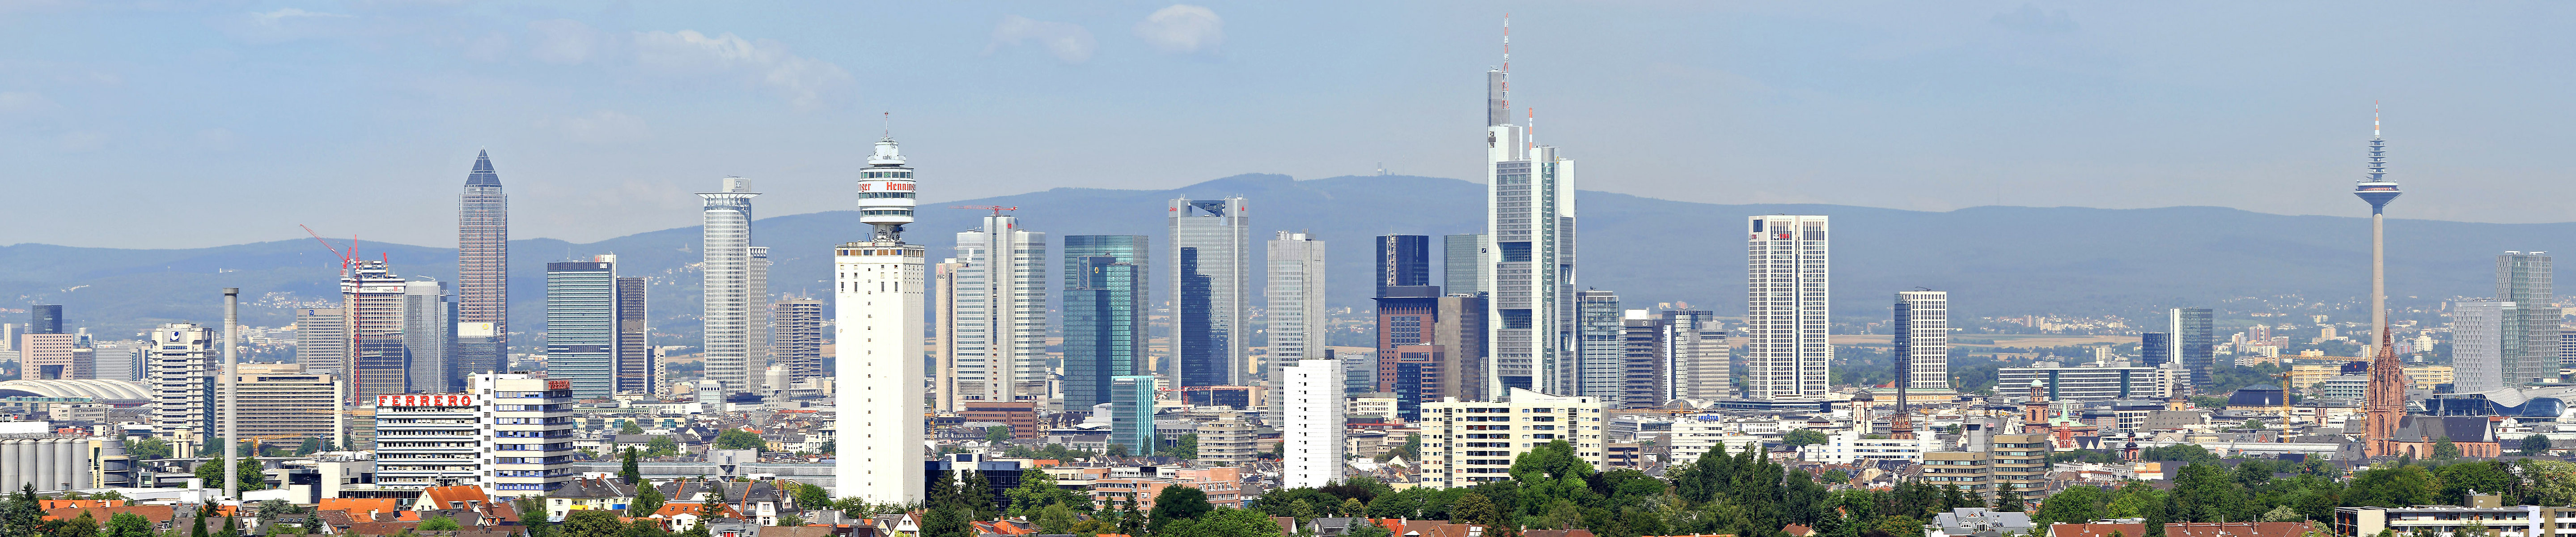 Download triple monitor 5760x1200 Frankfurt desktop background ID:474293 for free